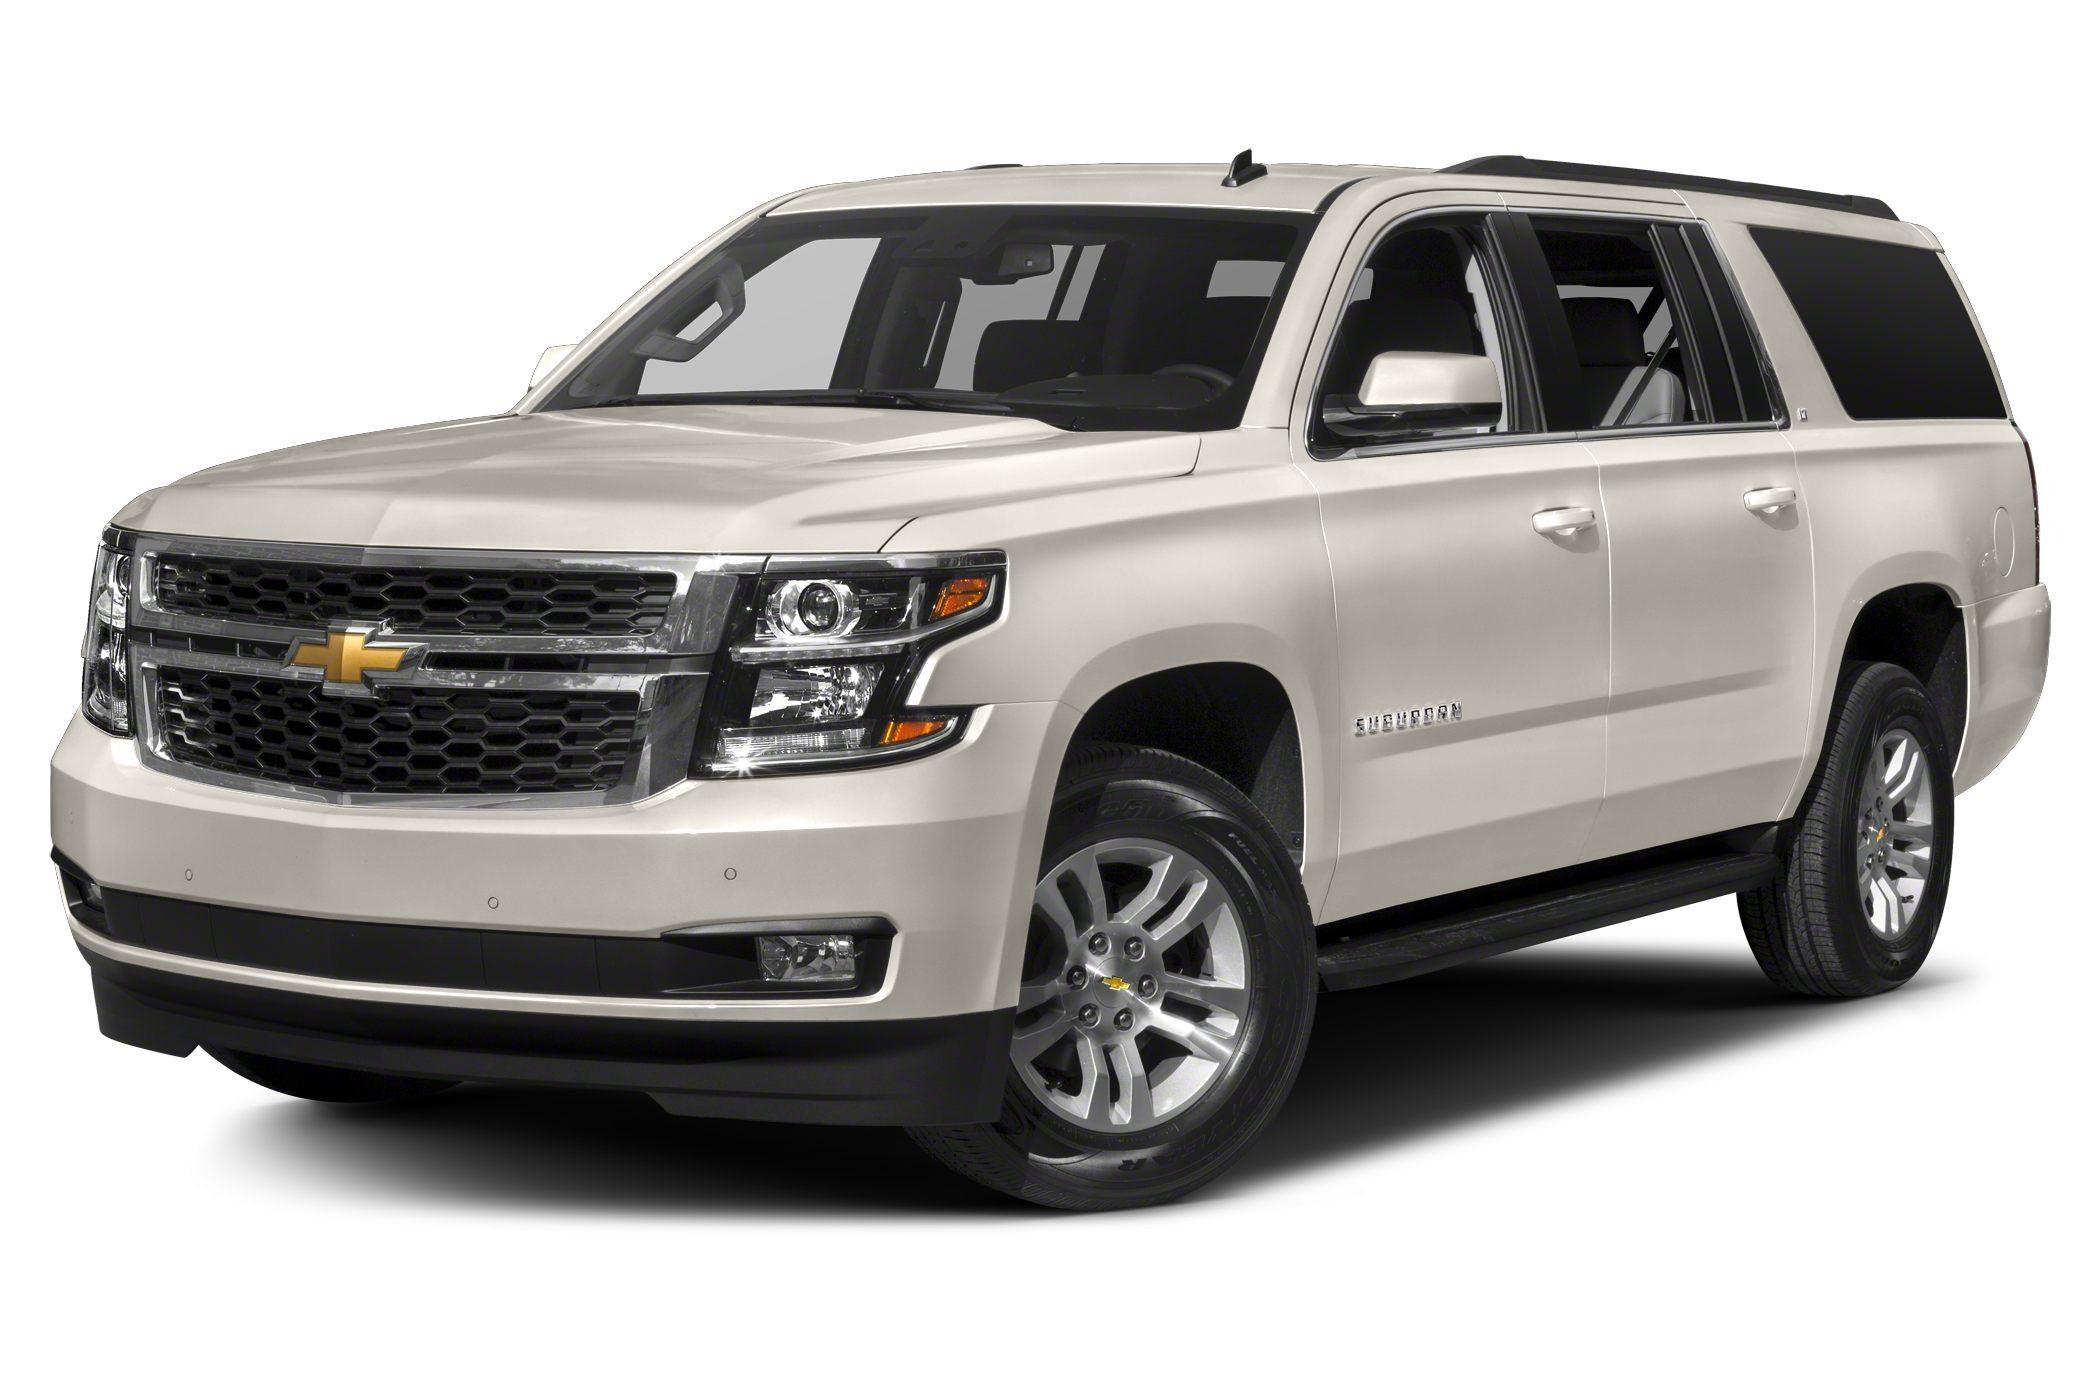 Take A Cruise In This Lifted 2018 Chevrolet Suburban 4x4 Premier